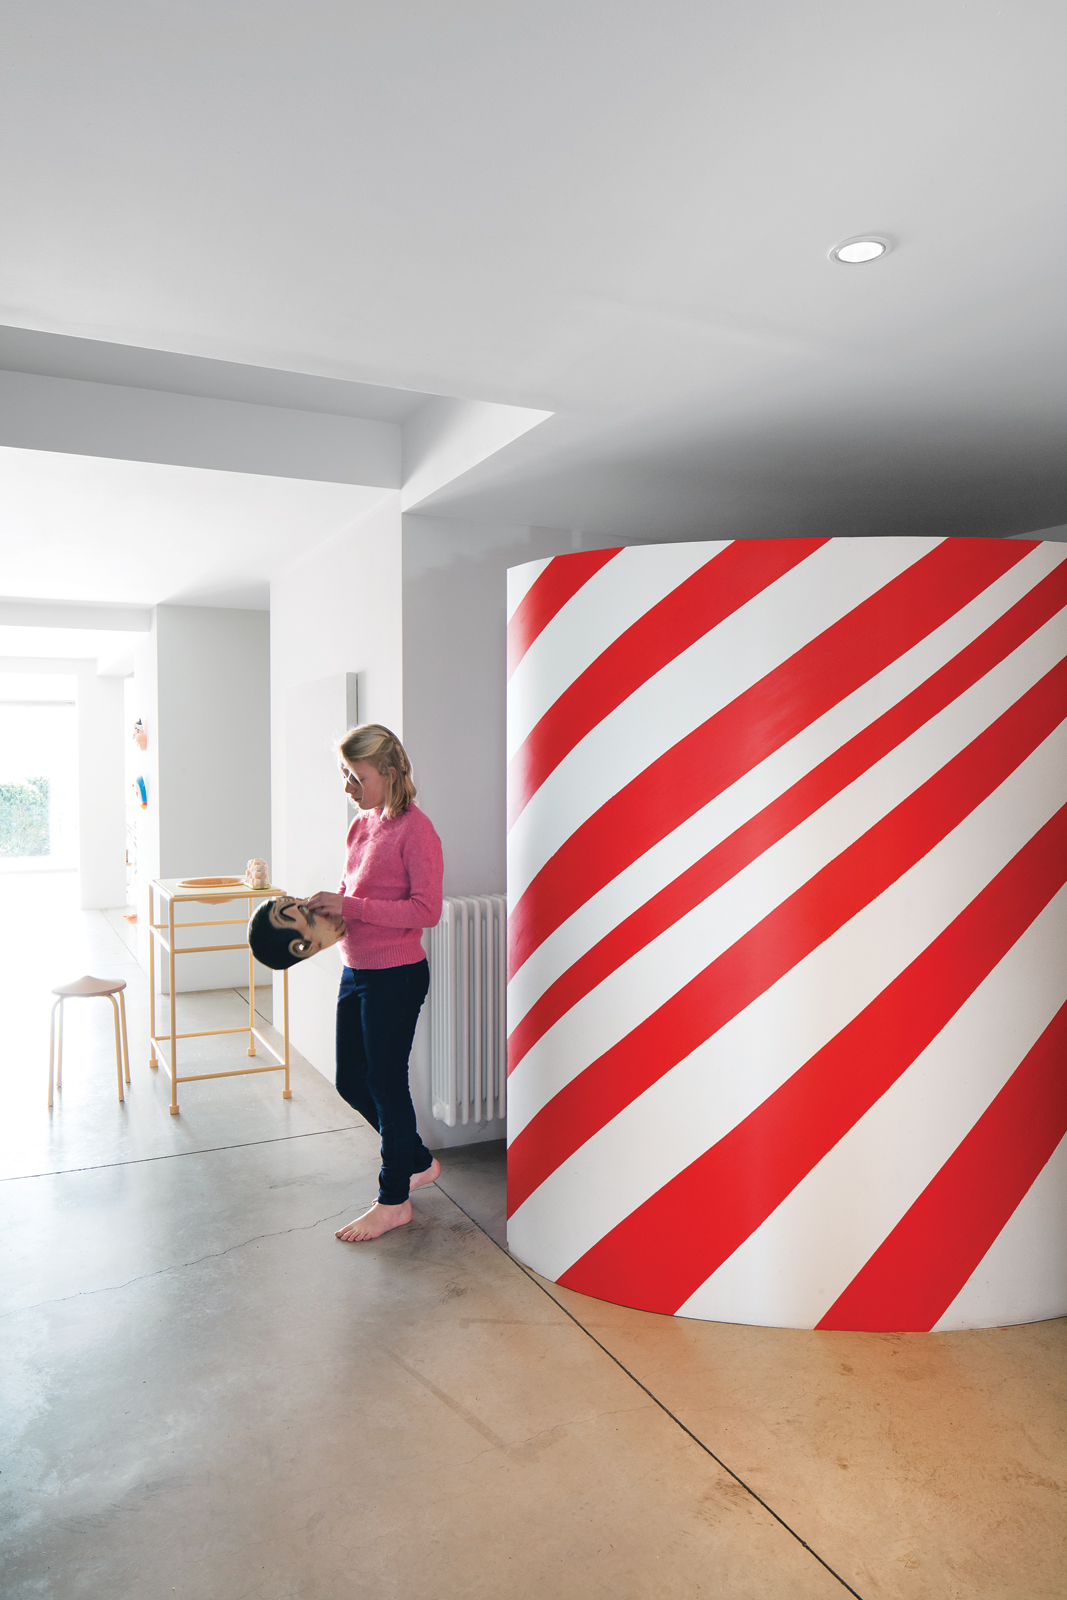 Red and white candy-striped wardrobe